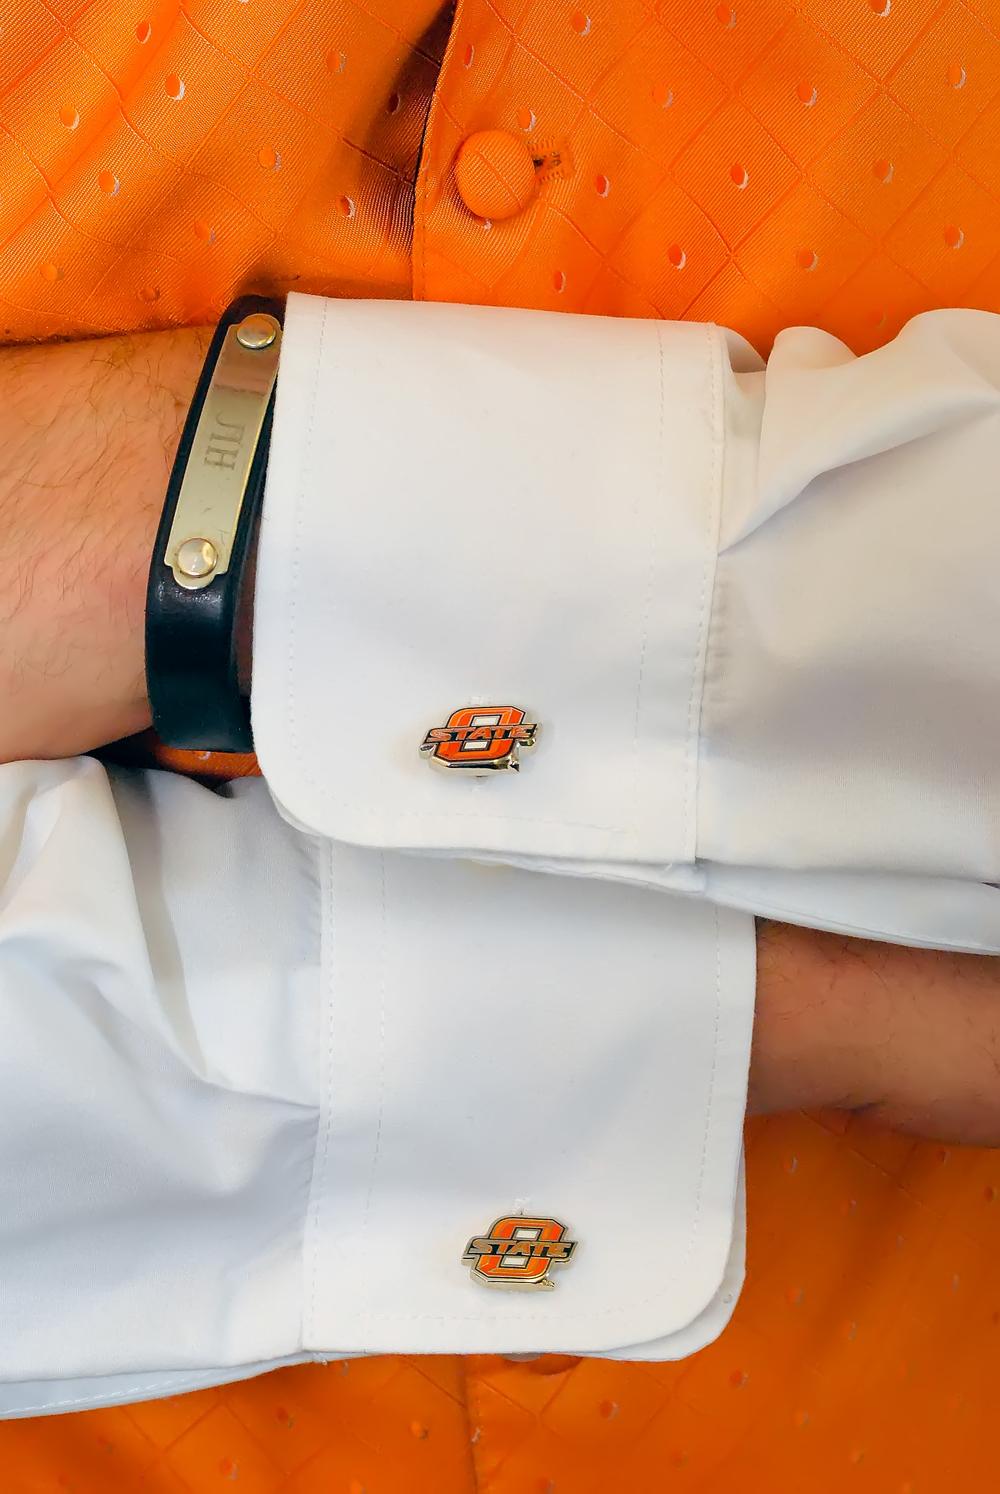 guthrie oklahoma wedding venue - dominion house orange groom cufflinks